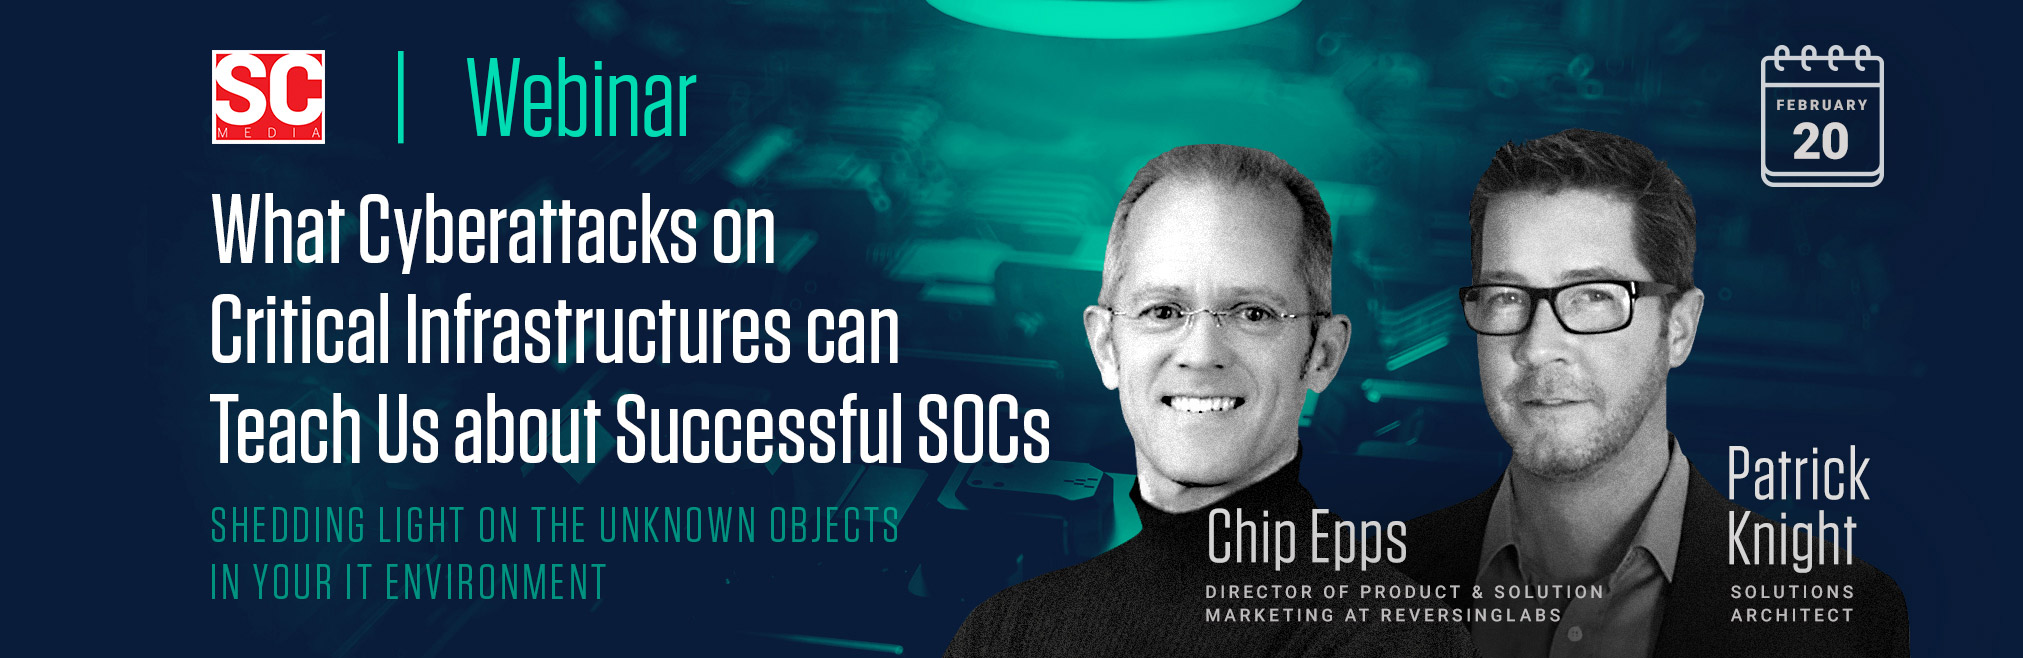 Webinar: What Cyberattacks on Critical Infrastructures can Teach Us about Successful SOCs